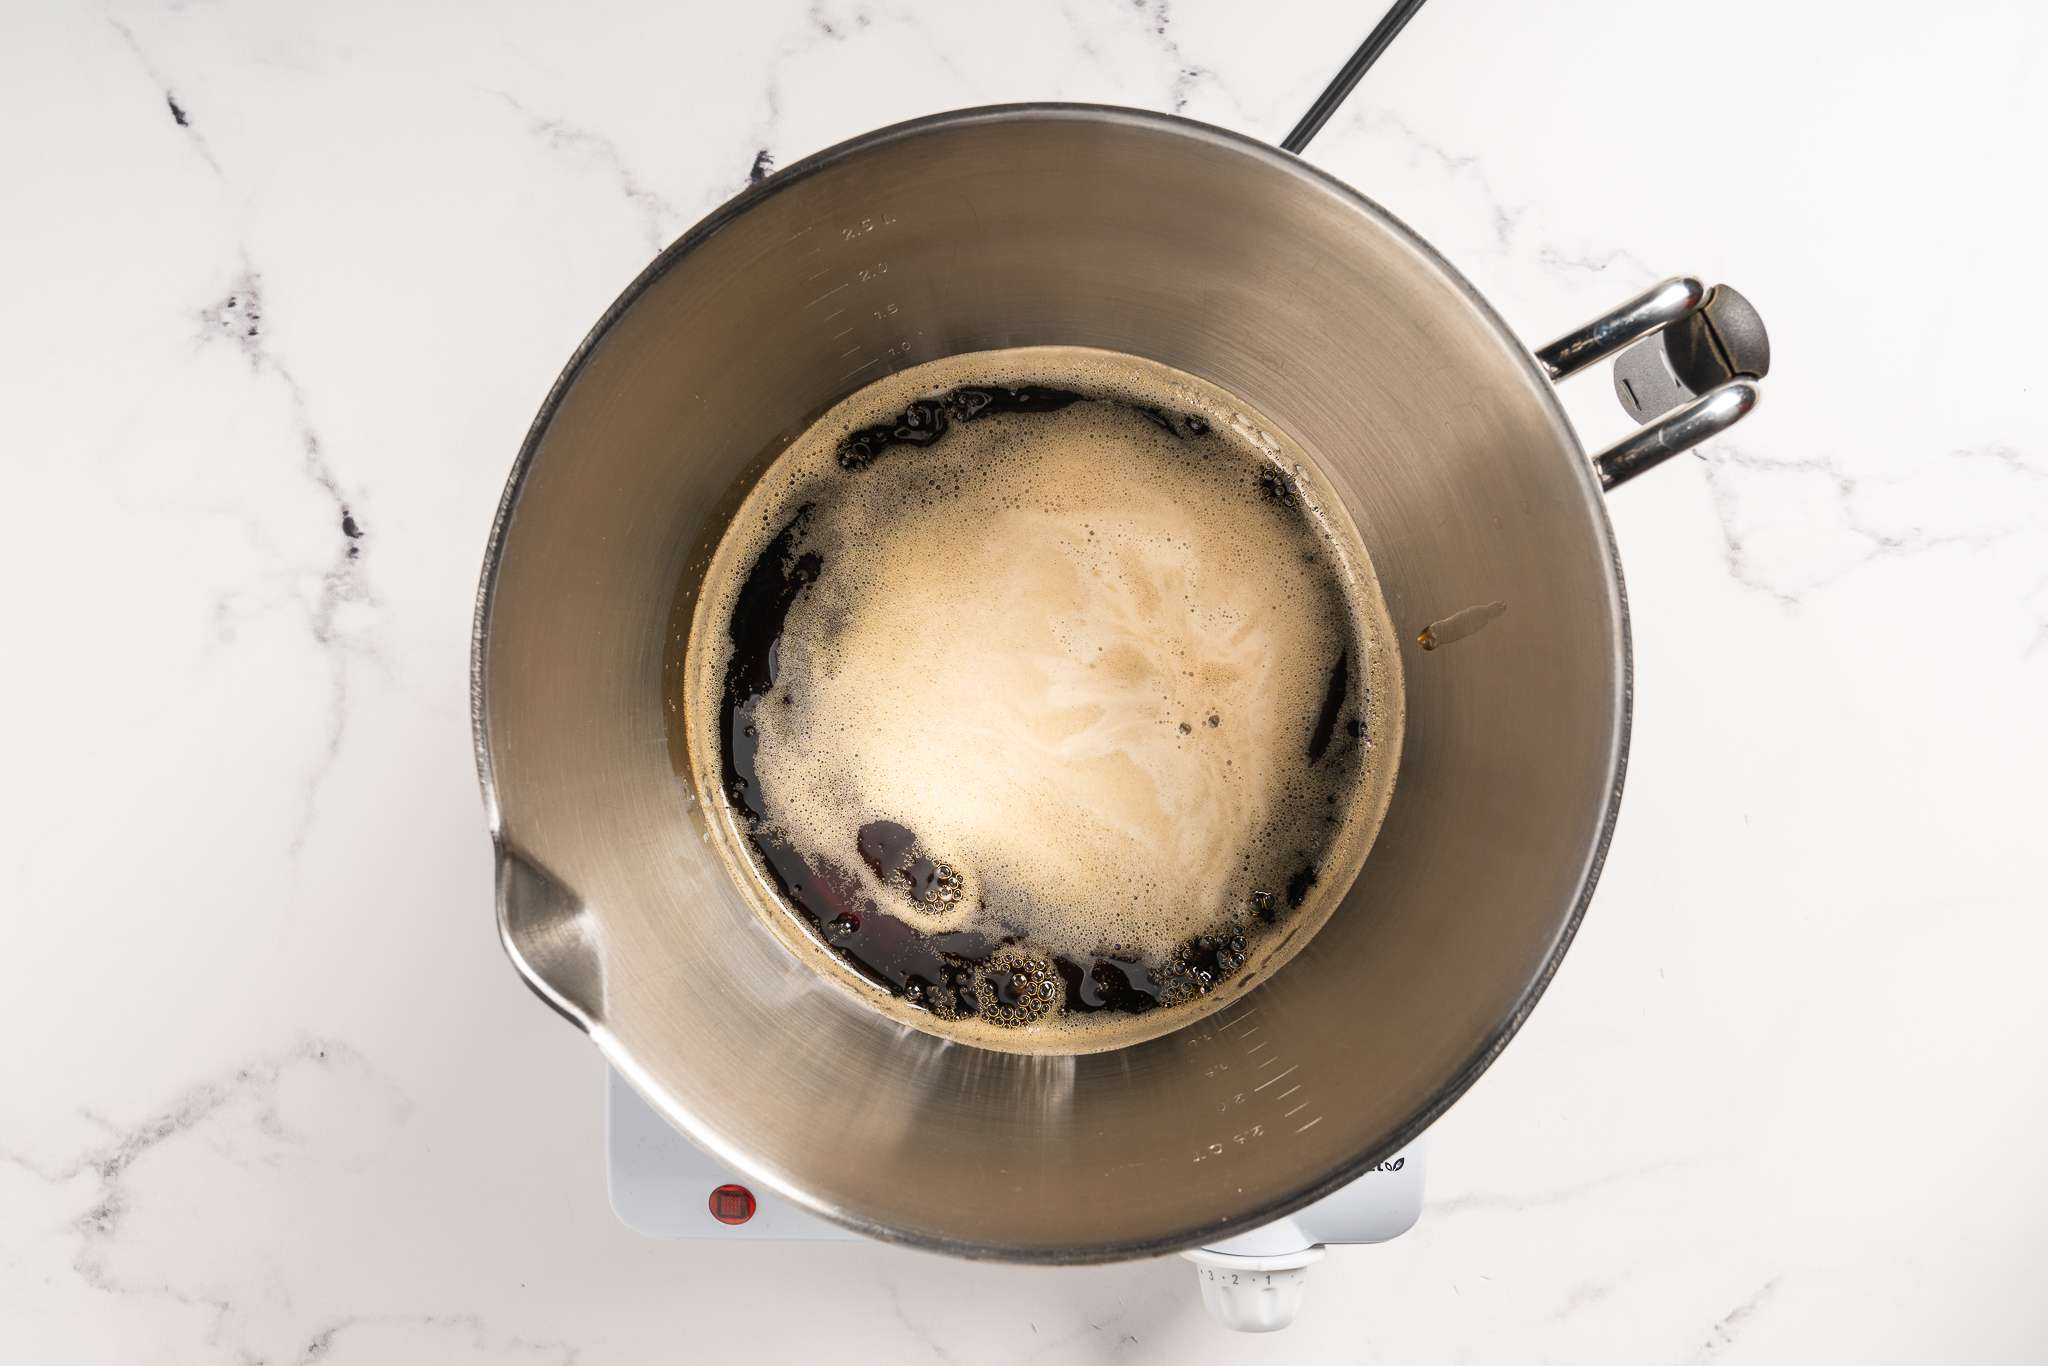 bring syrup to a boil